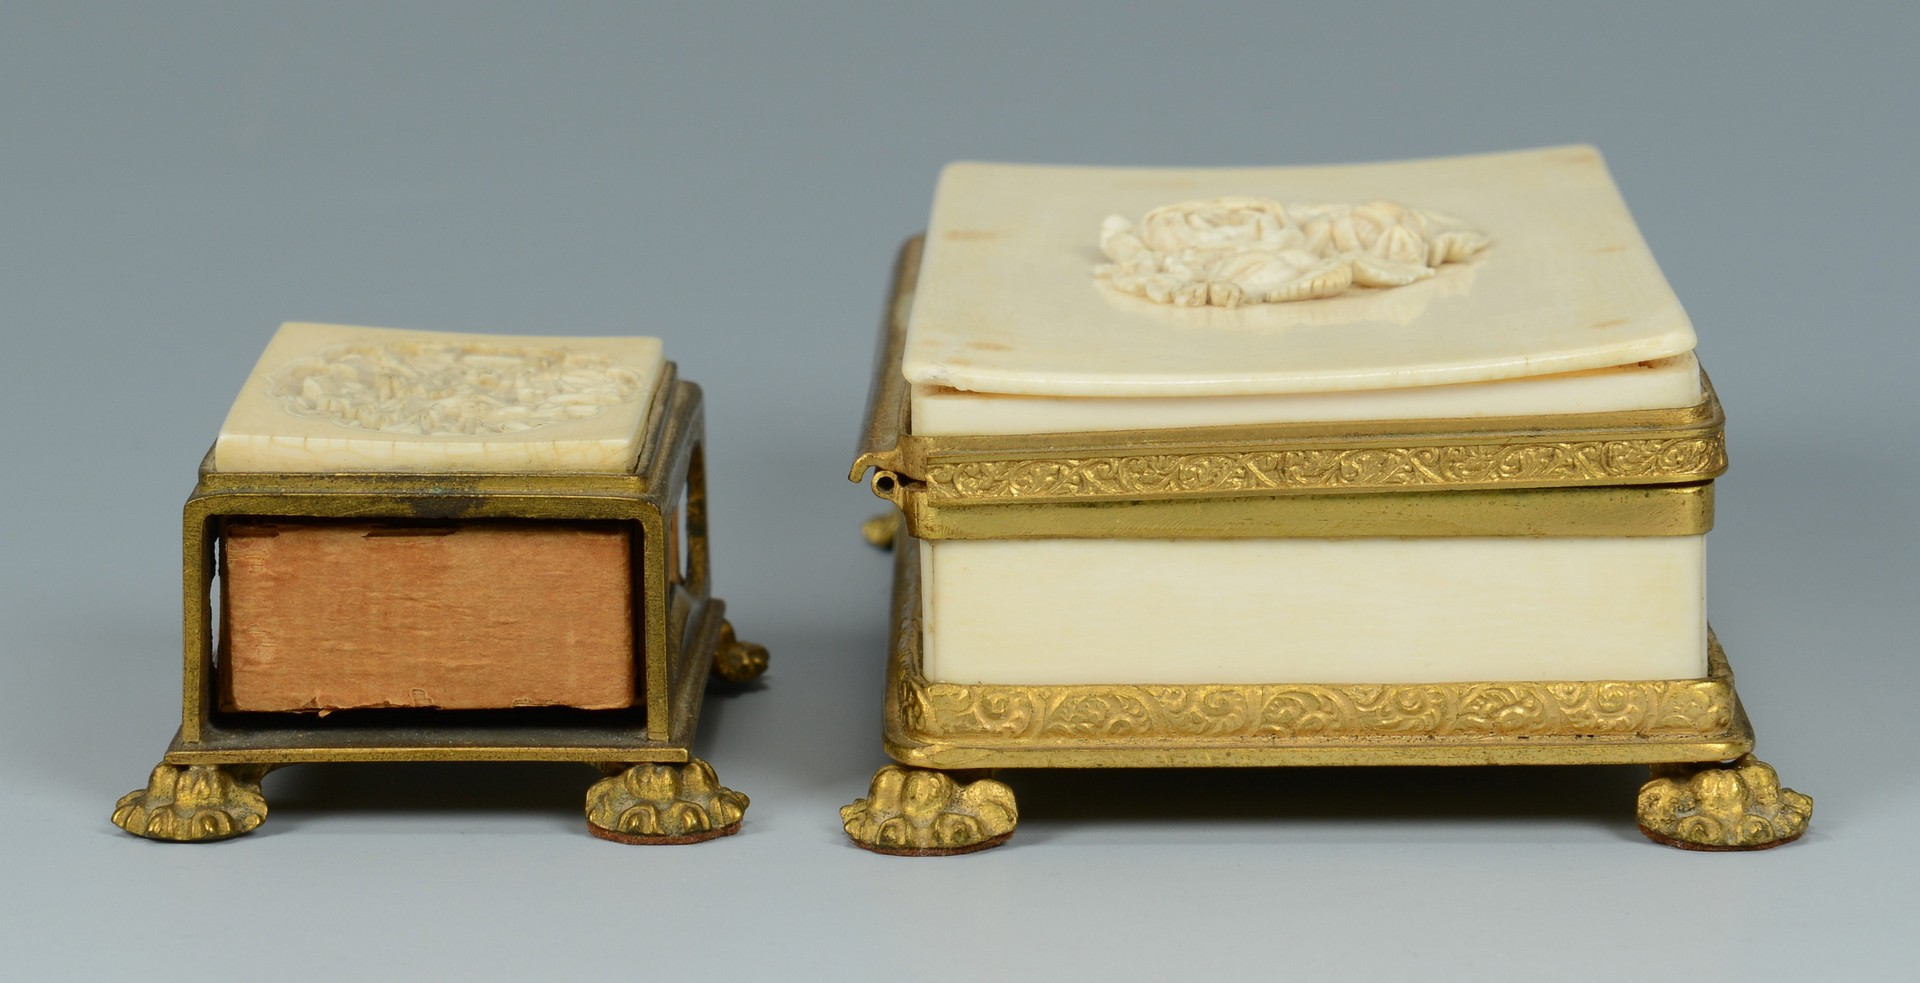 Lot 3389463: 2 Gilt mounted Oriental style ivory boxes